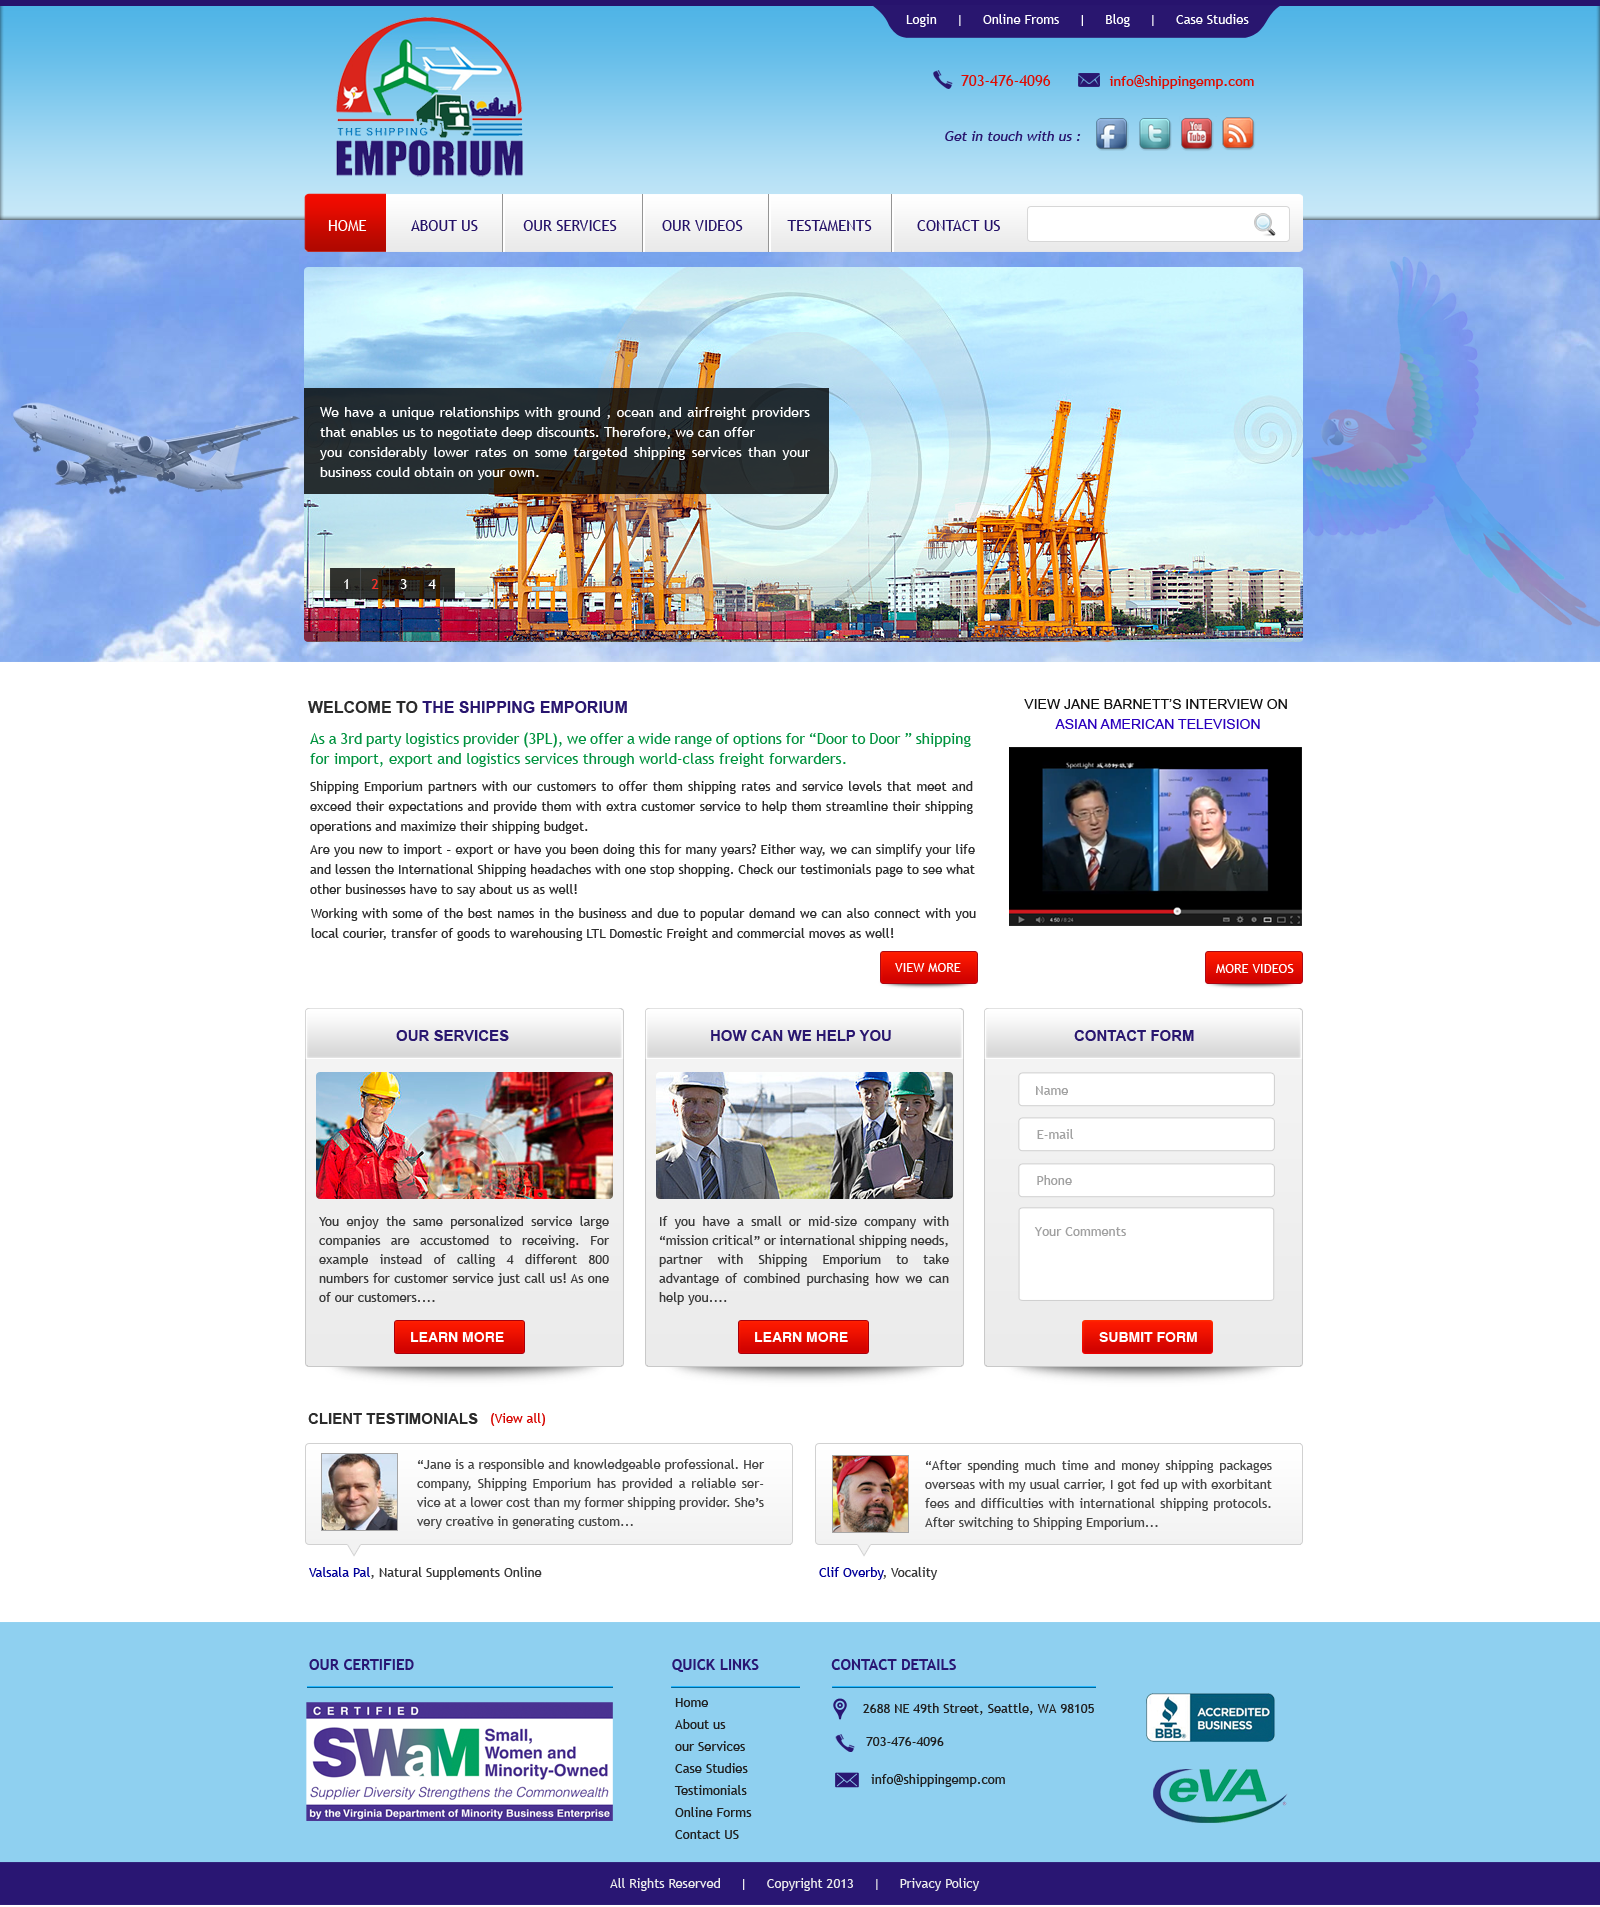 Web Page Design by Vishwa Km - Entry No. 48 in the Web Page Design Contest Artistic Web Page Design for The Shipping Emporium Website.